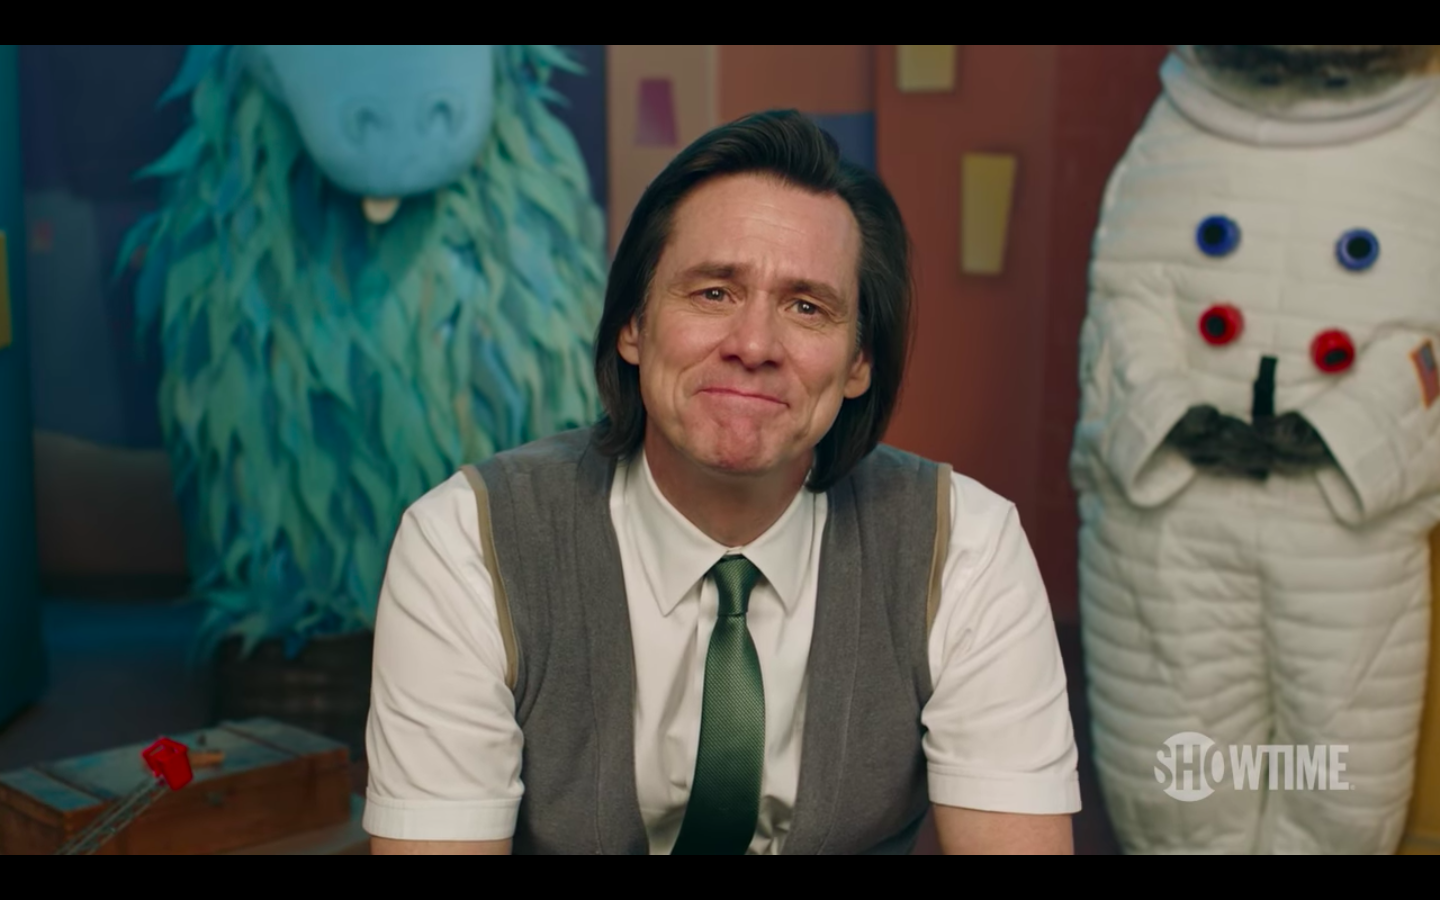 jim-carrey-kidding-michel-gondry-showtime-trailer-still